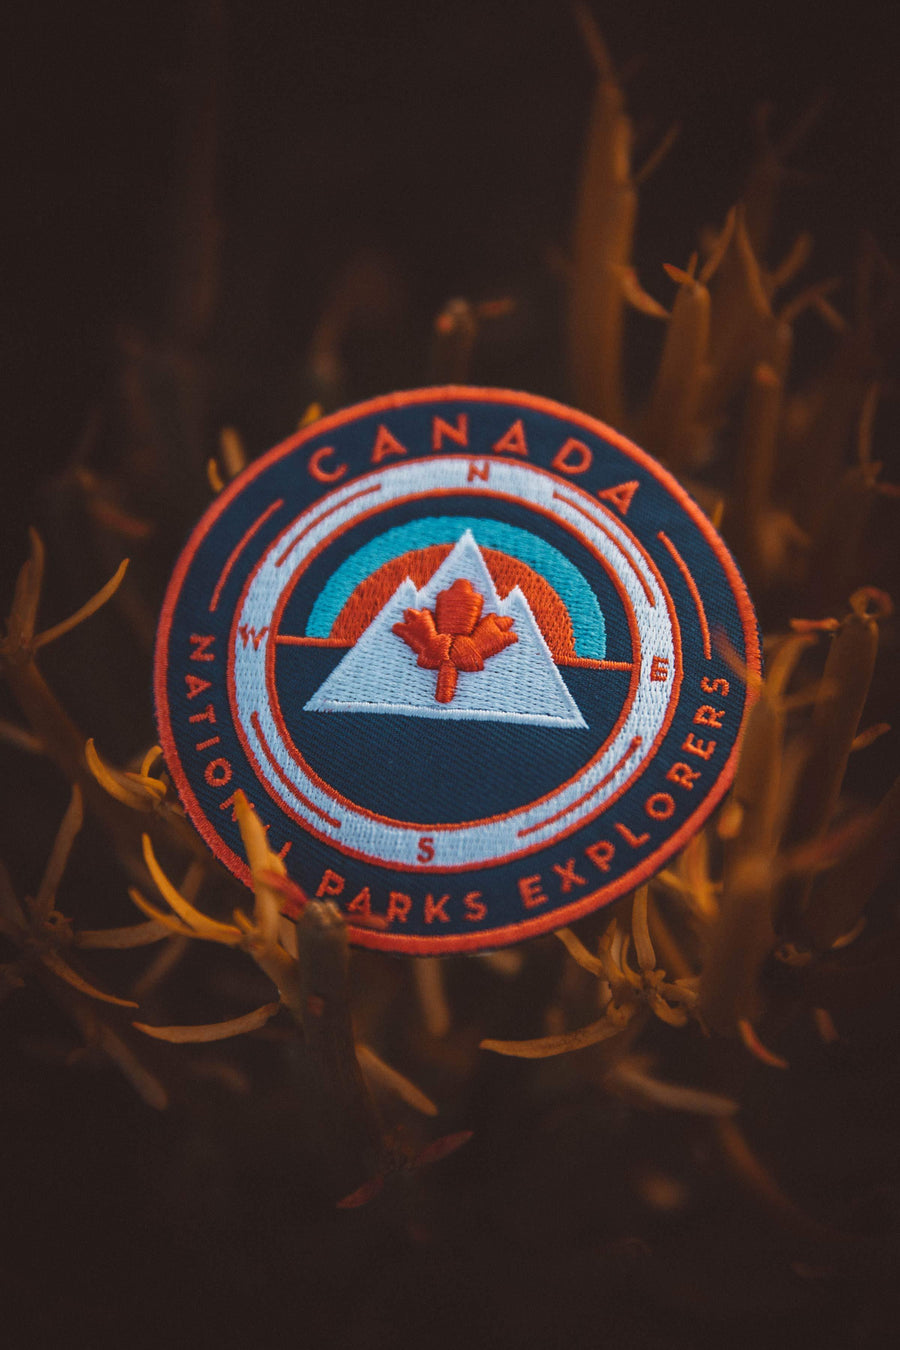 Canada Maple Leaf National Parks Explorer's Patch - Wondery, A Parks Apparel Brand